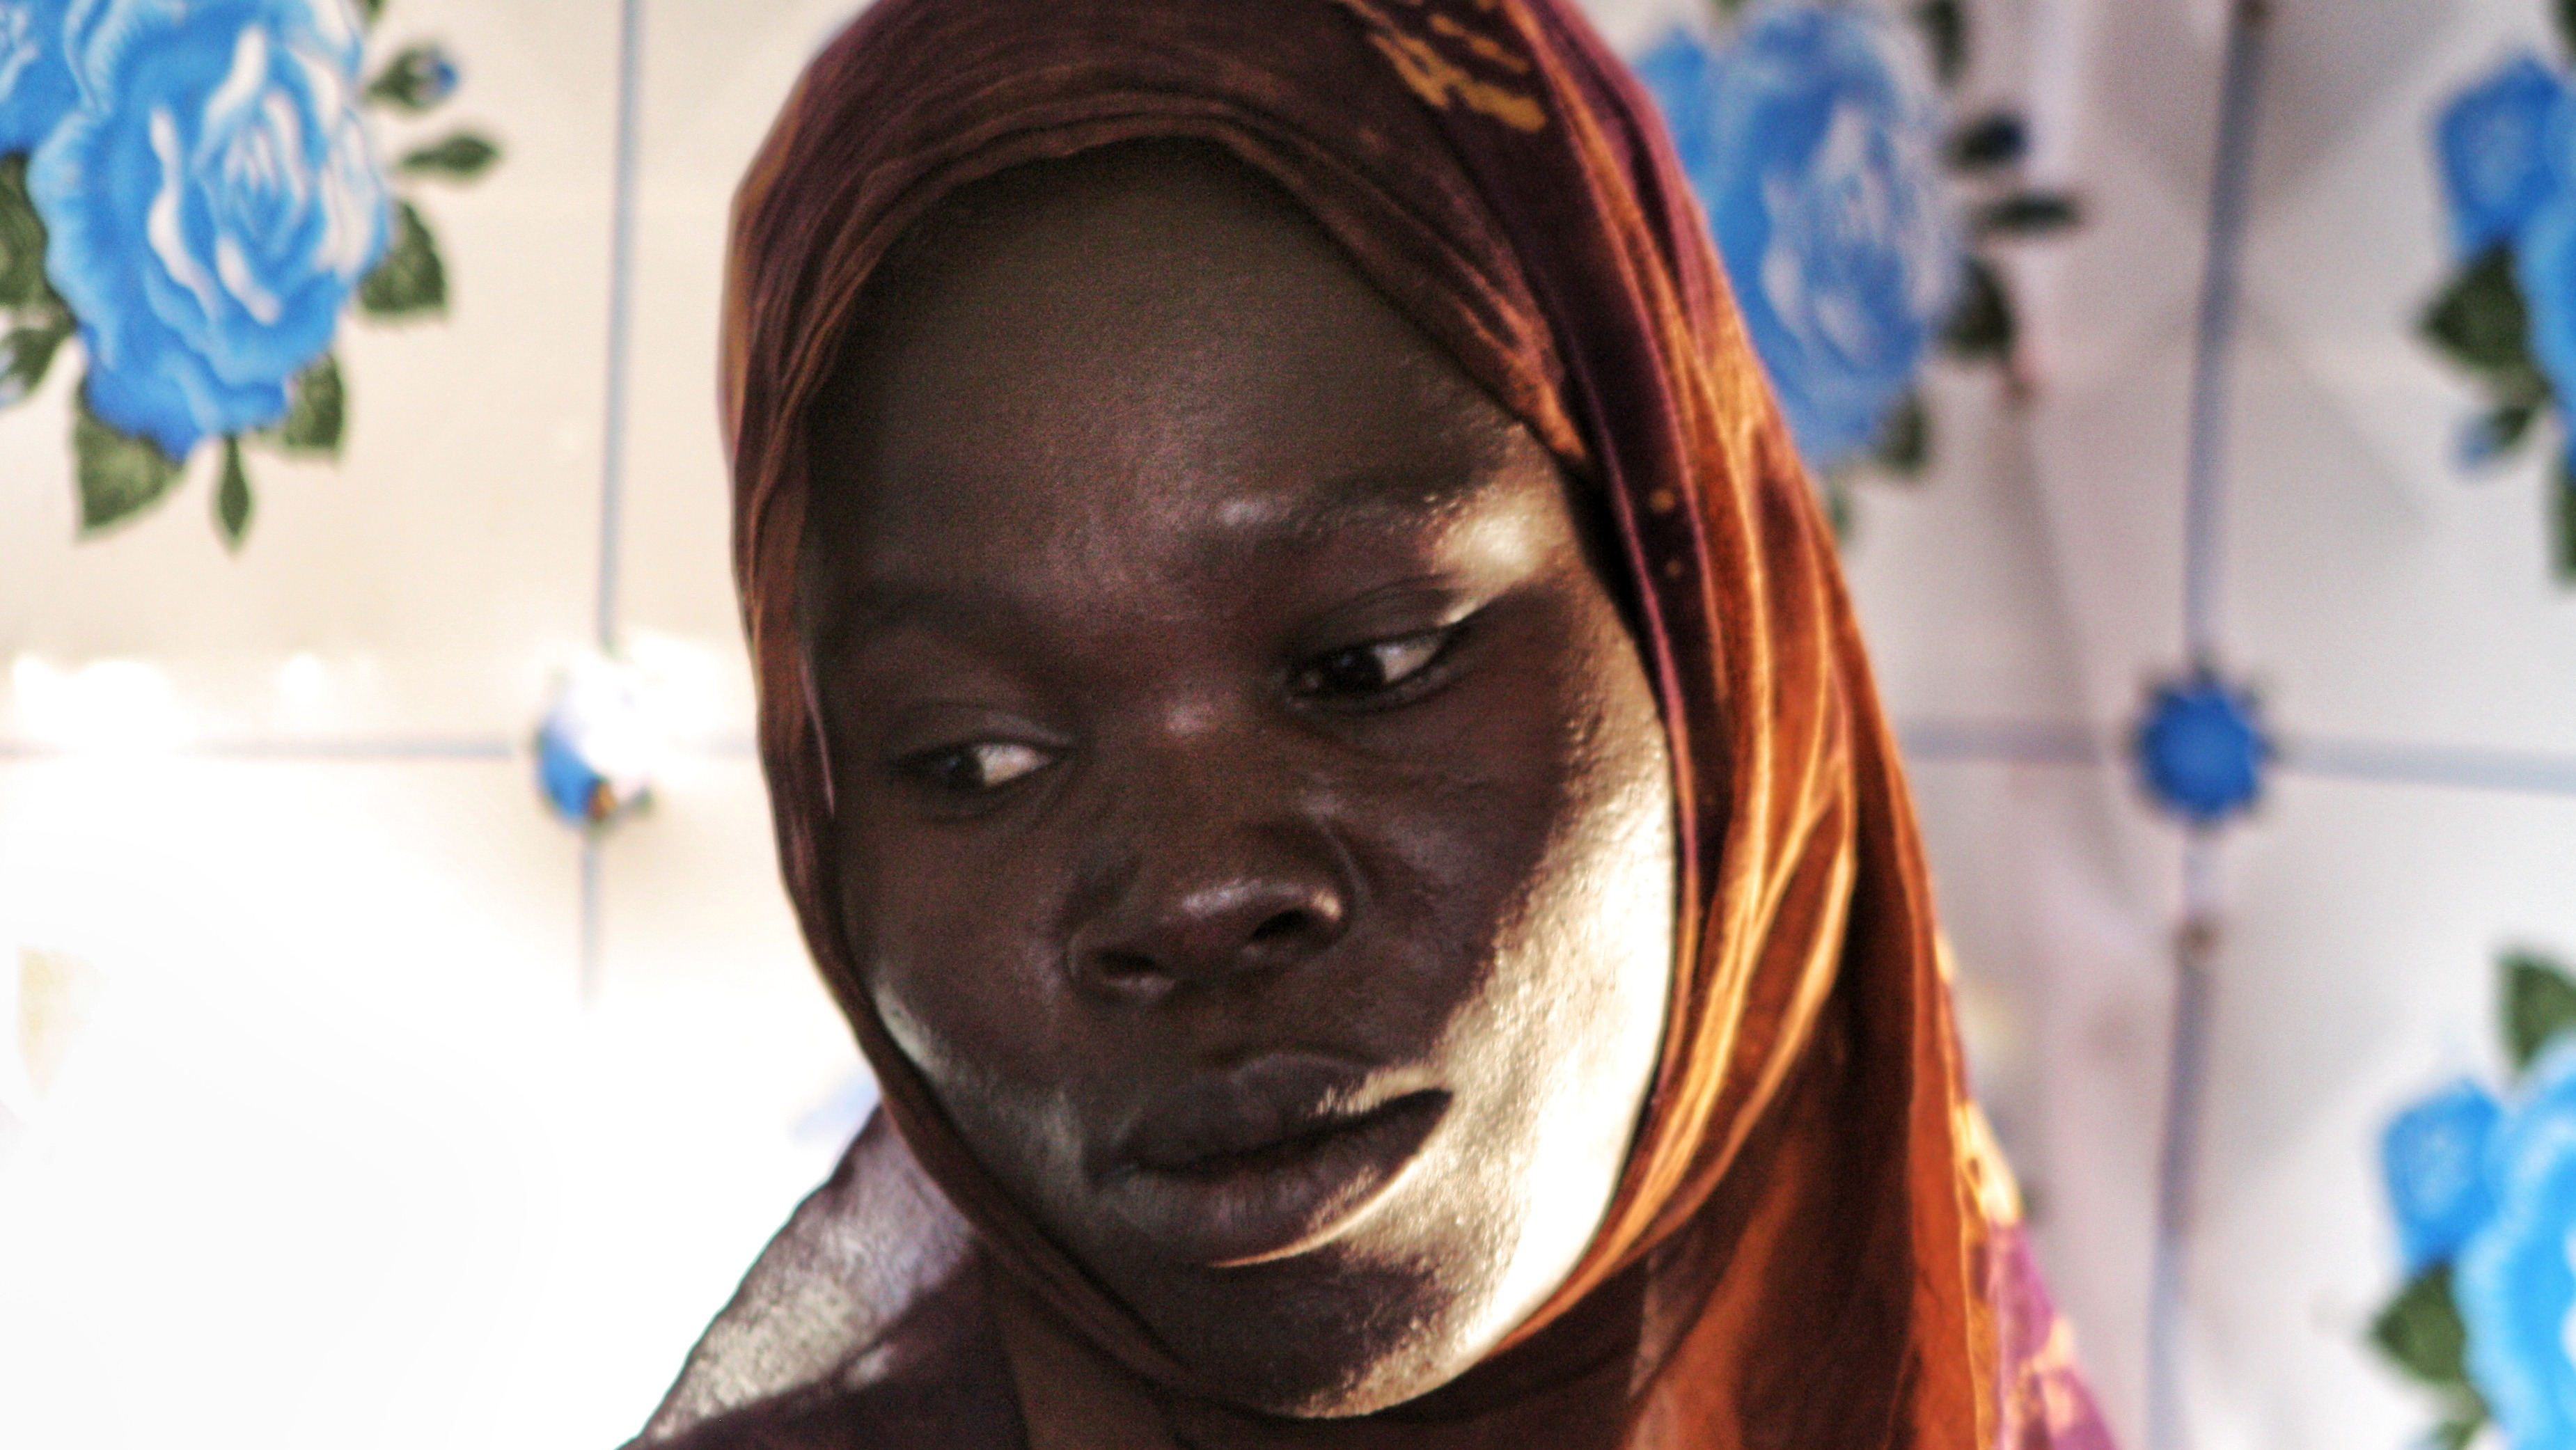 Aichetou Mbareck was liberated from slavery in Mauritania in 2010.